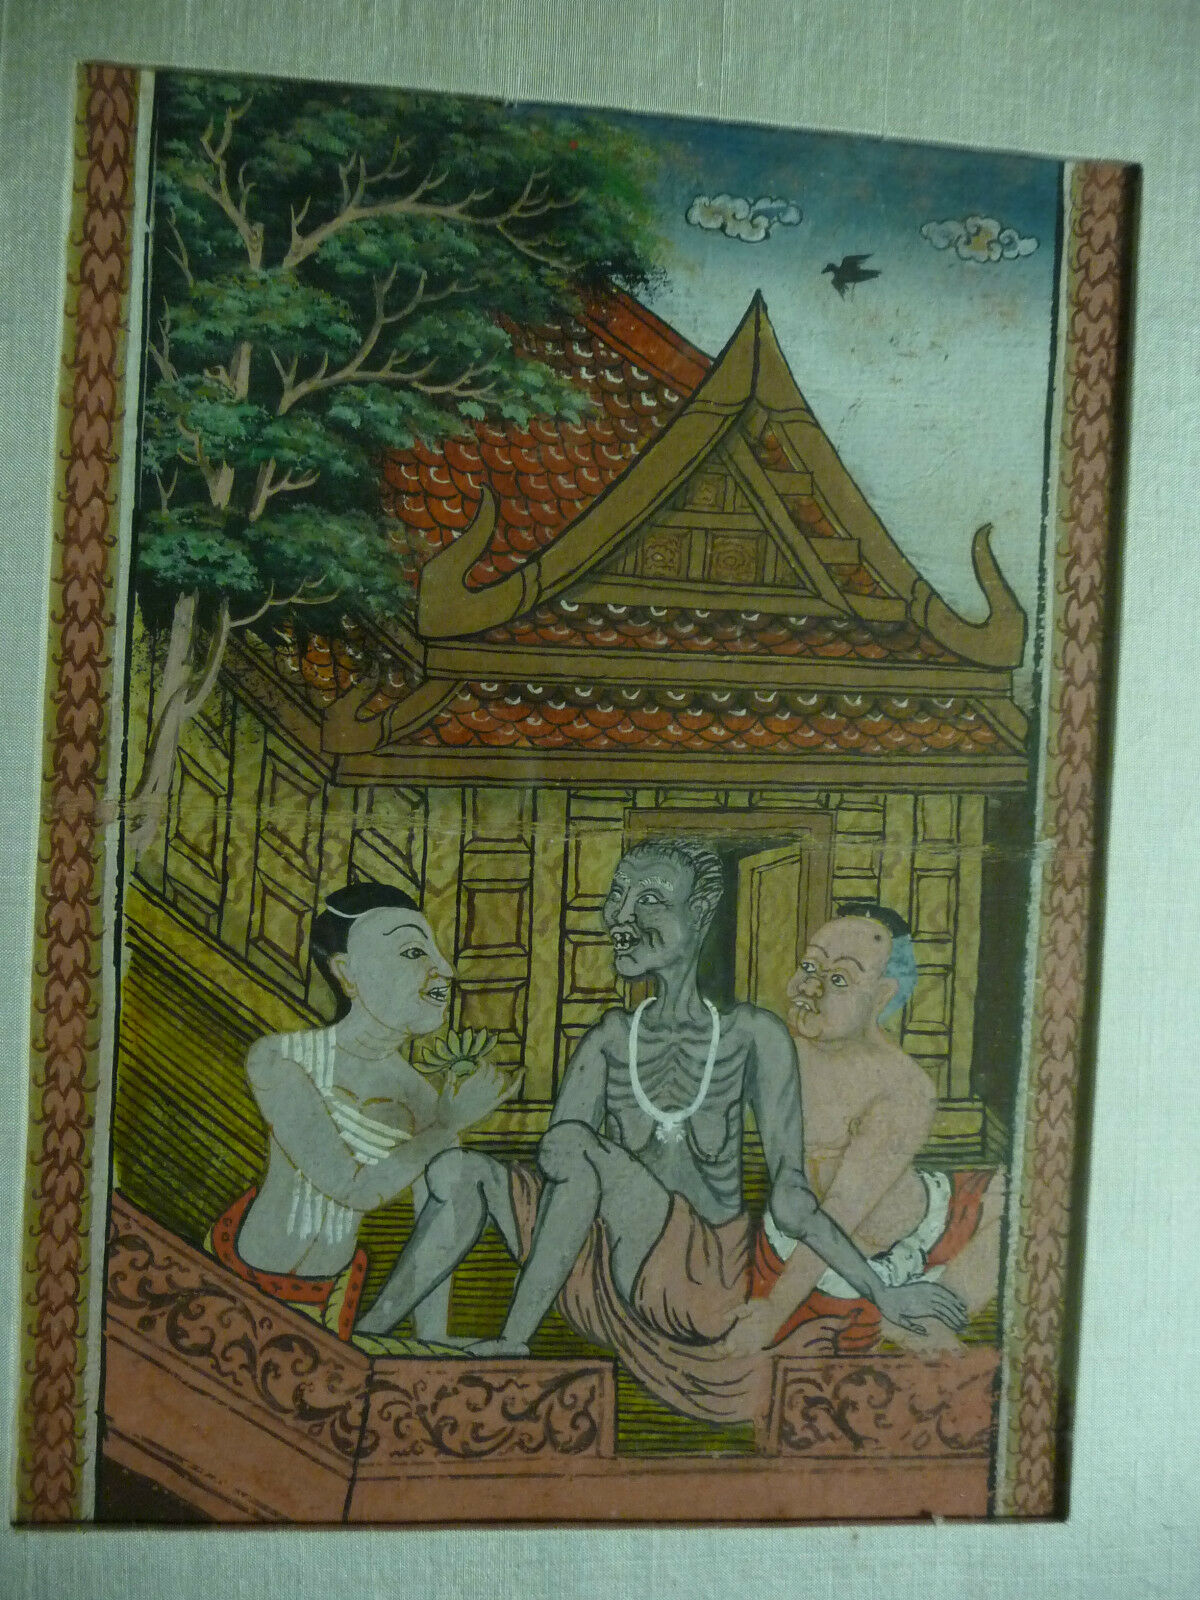 Unique Old Original Painting Group of 3 Seated People 3 Stages of Life (India?) 3